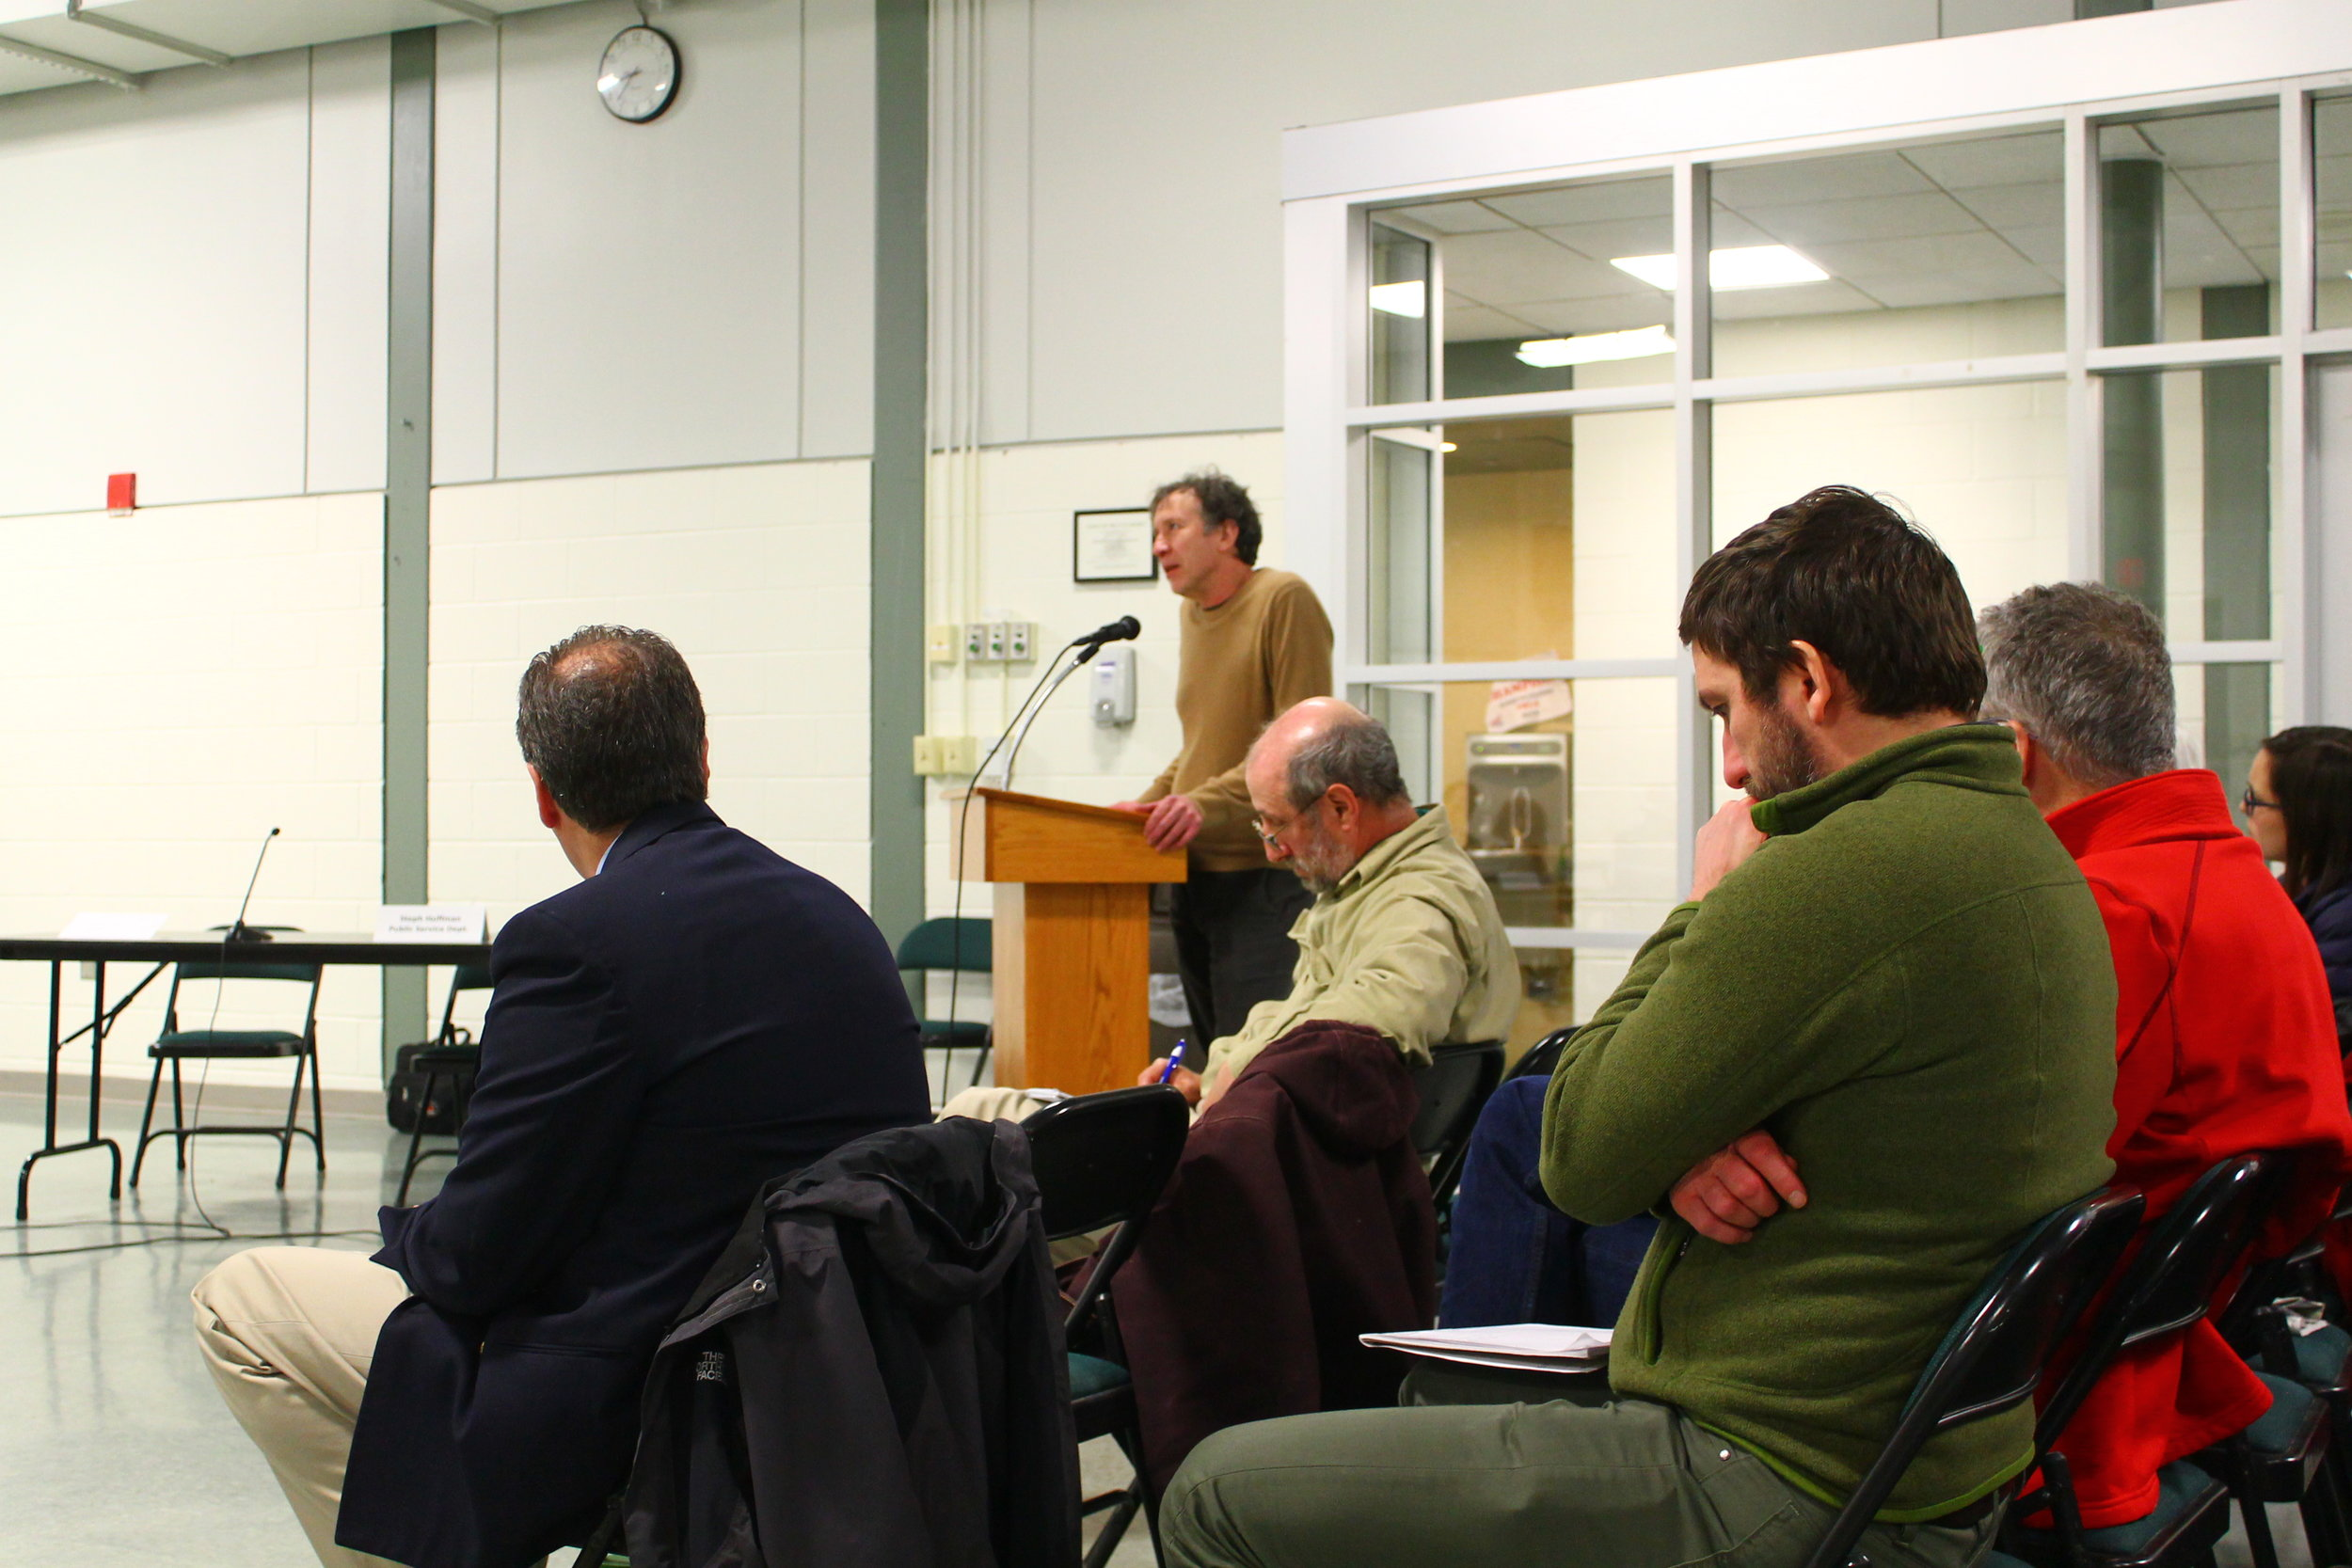 Dr. Tom Webler speaking during a public comment session at a Vermont Yankee Community Advisory Panel meeting.